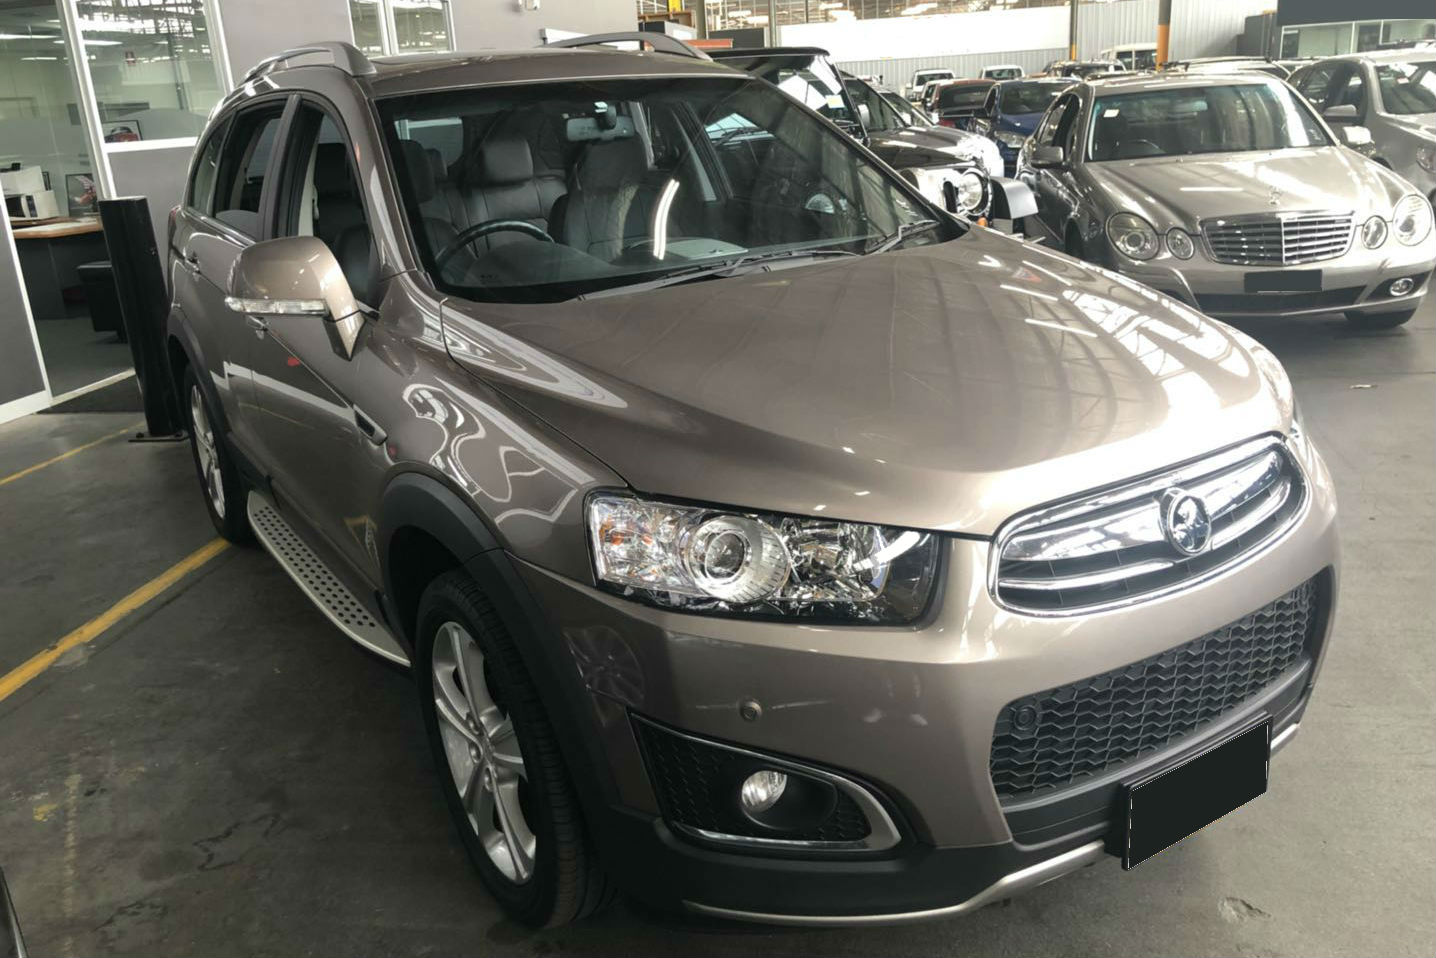 Carbar-2015-Holden-Captiva-110020180615-180955.jpg